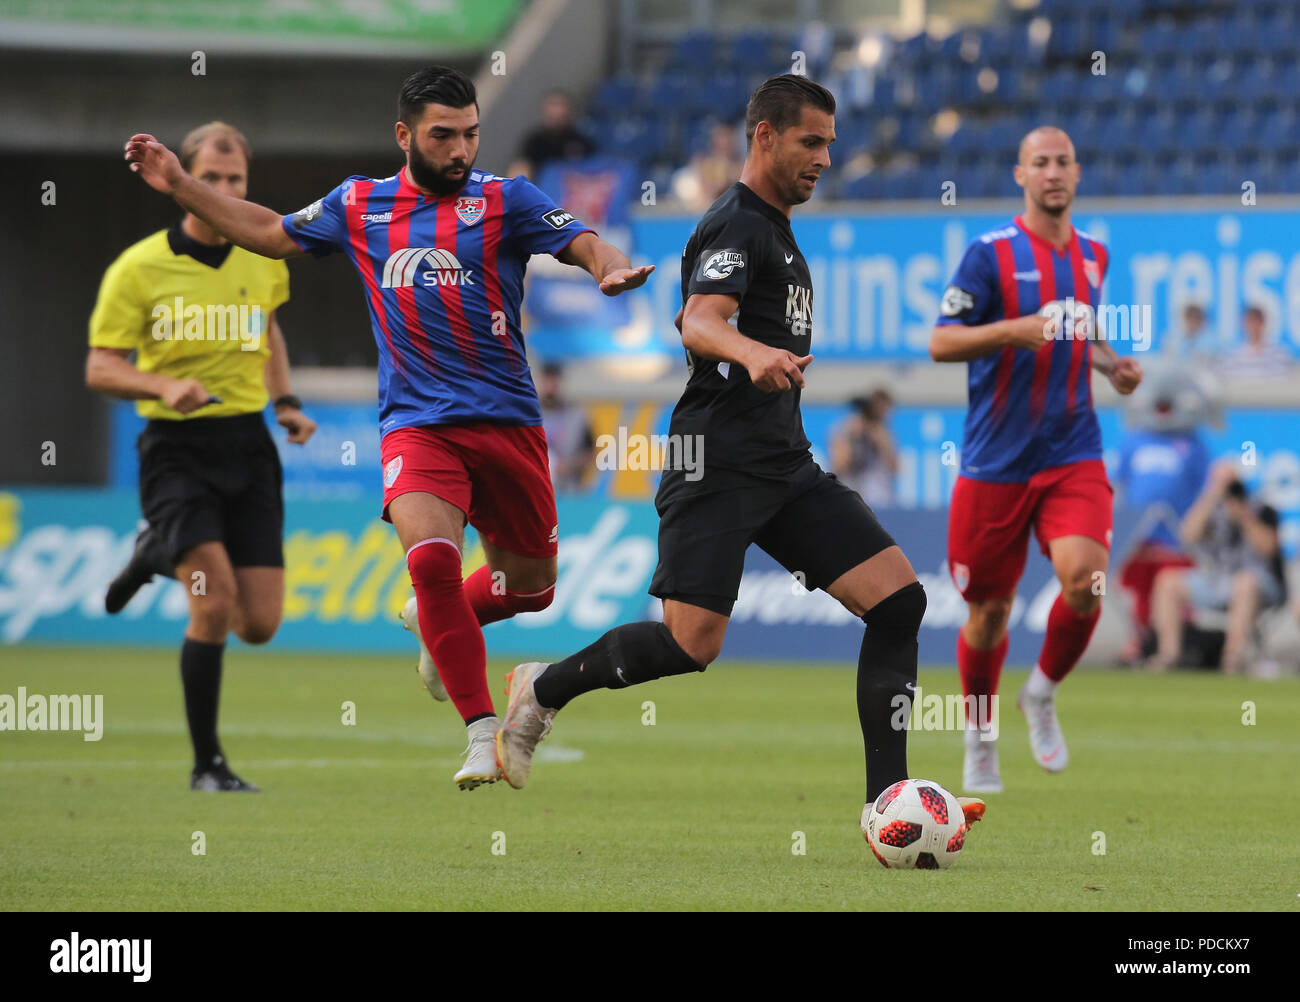 Duisburg, Germany. 08th Aug, 2018. Duisburg, Germany August 8 2018, 3rd league matchday 3, KFC Uerdingen 05 vs SV Meppen: Oguzhan Kefkir (KFC), Luka Tankulic (SVM) in competition. Credit: Juergen Schwarz/Alamy Live News - Stock Image